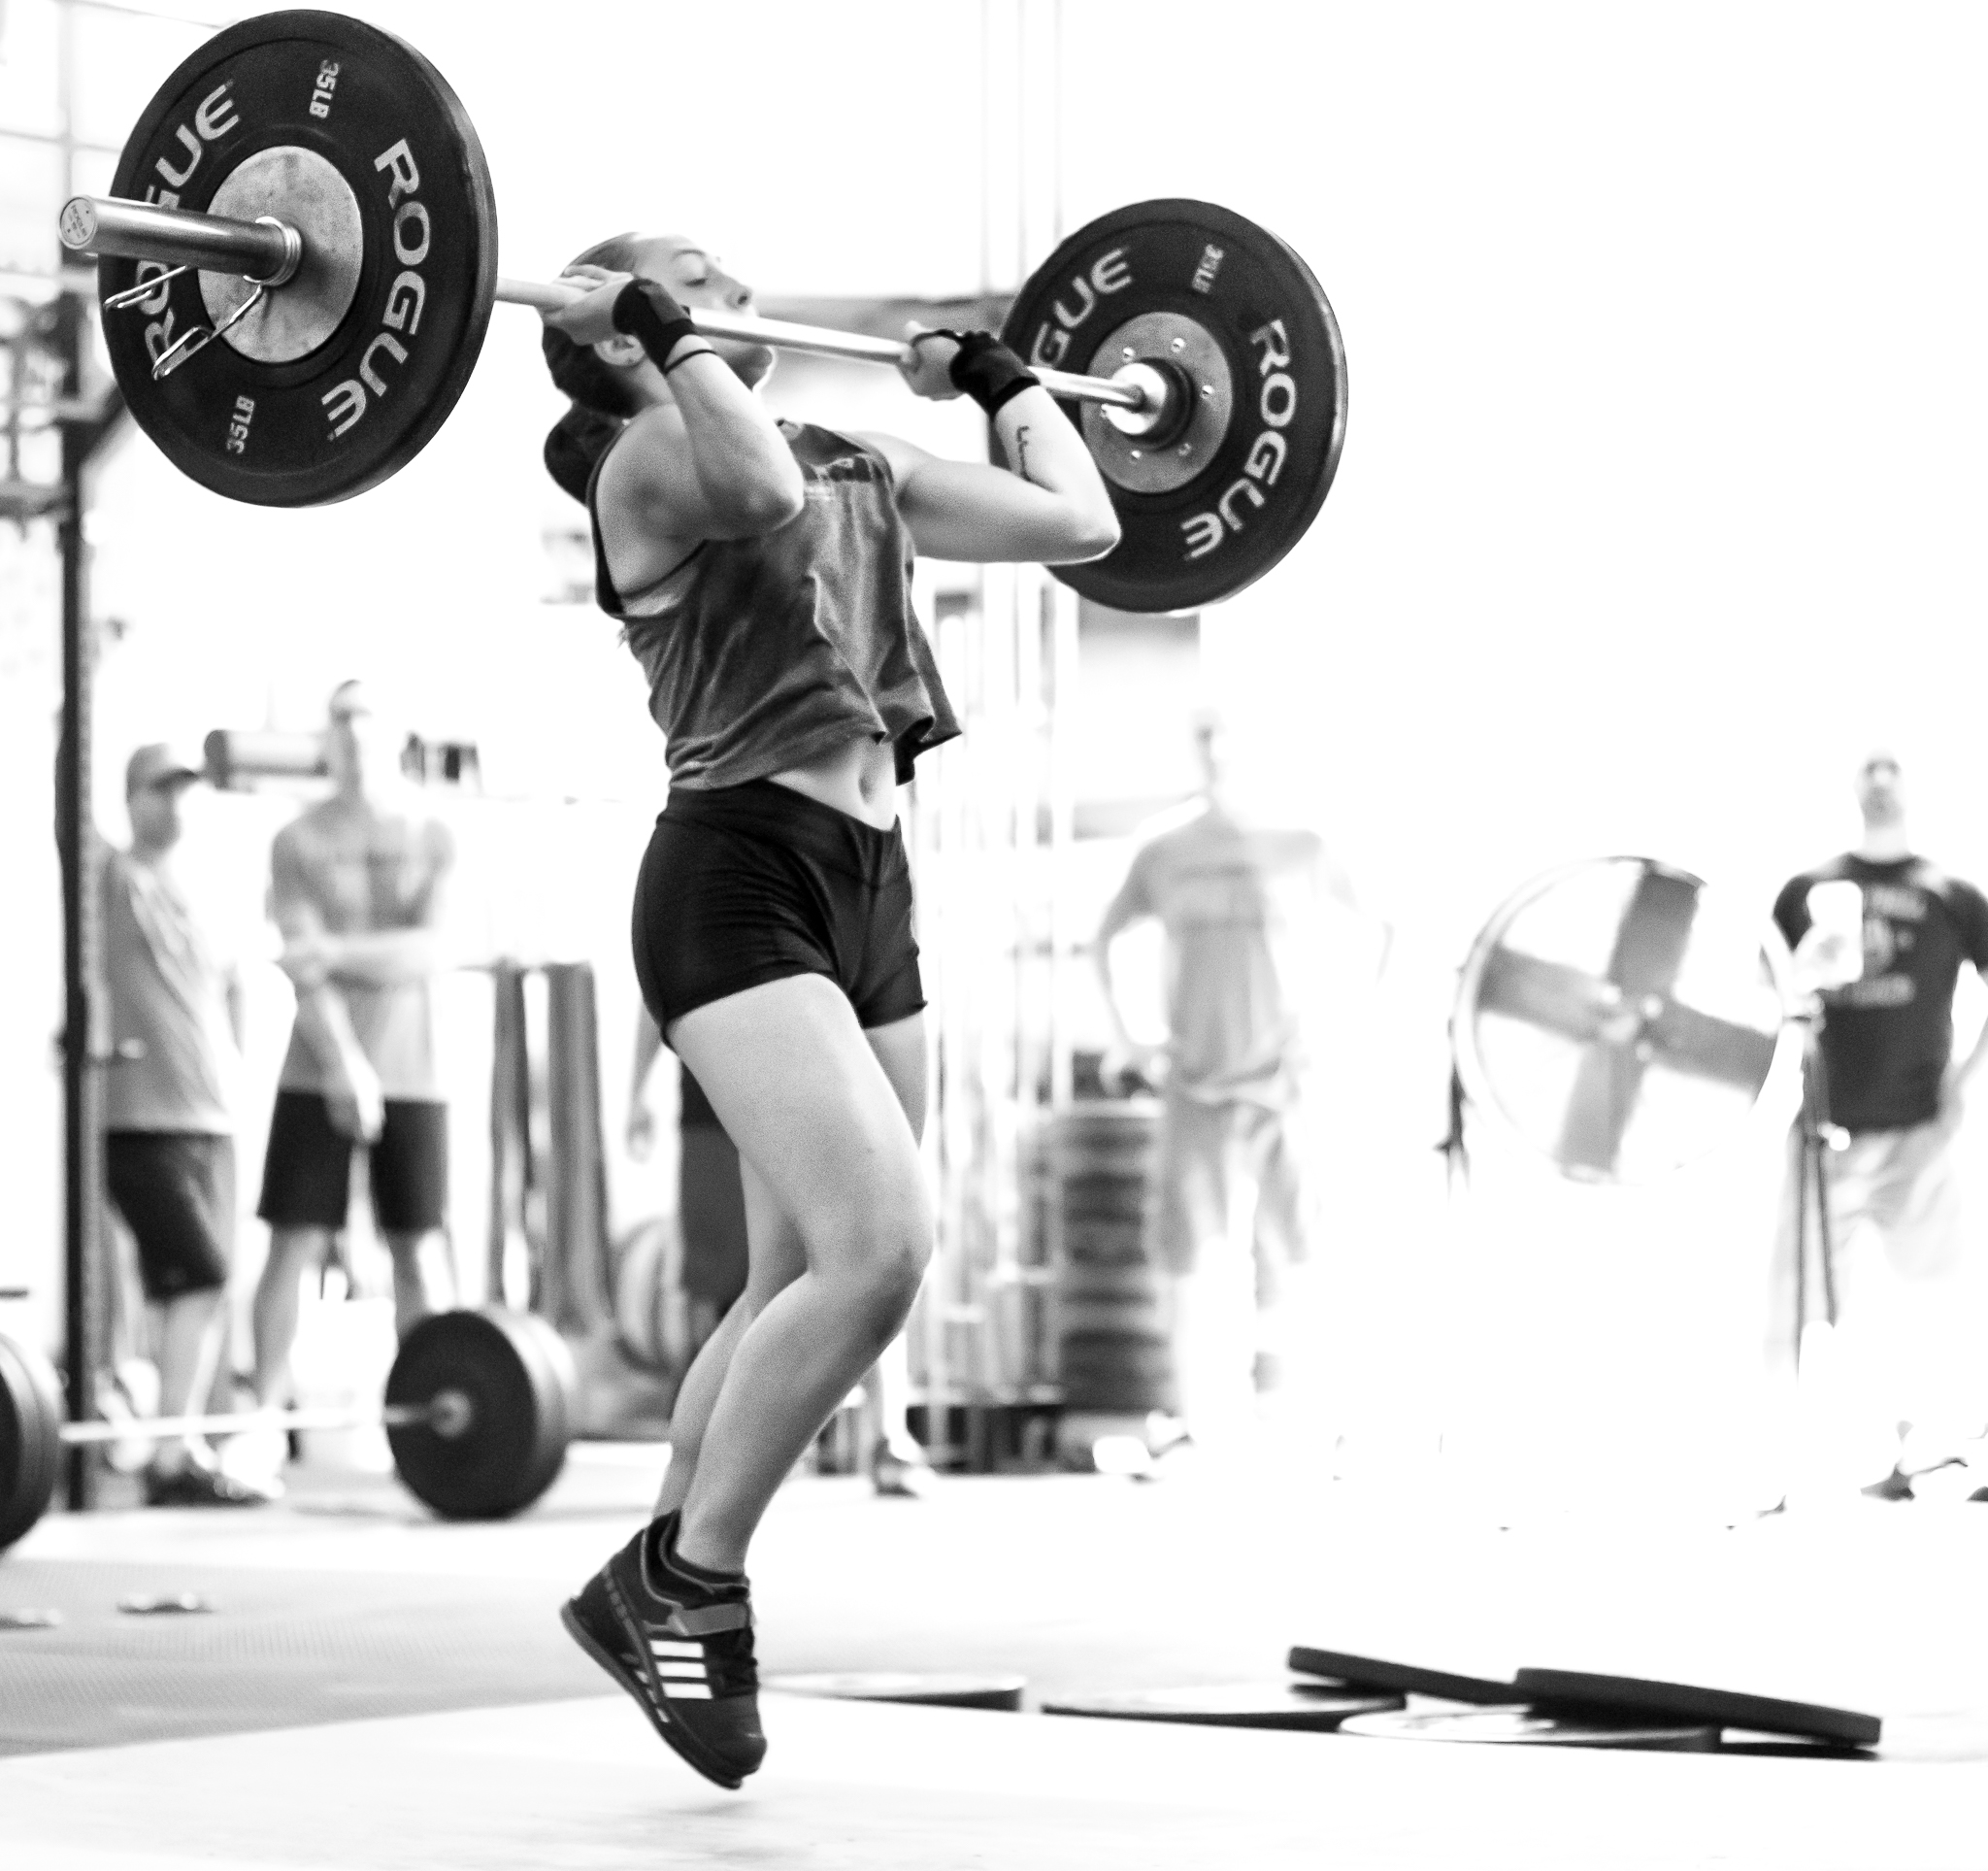 Photograph taken at   Crossfit Strongtown  .